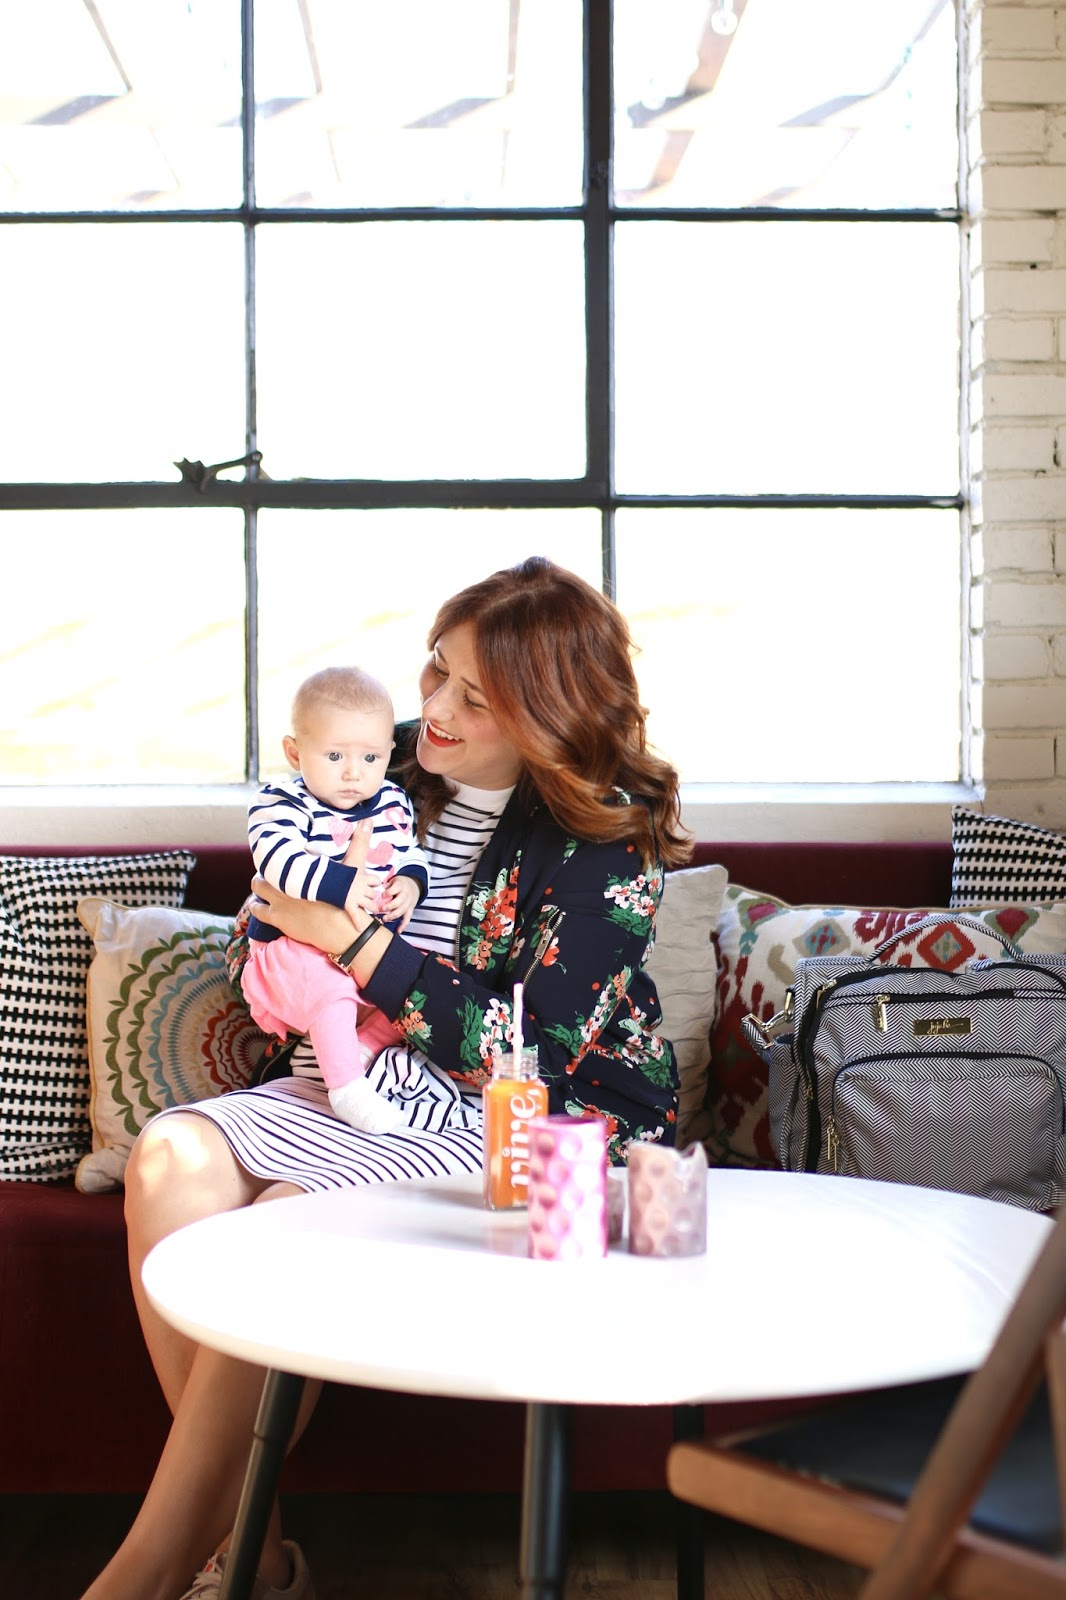 vive Juciery, salt lake city, jujube legacy, asos striped dress, mom style